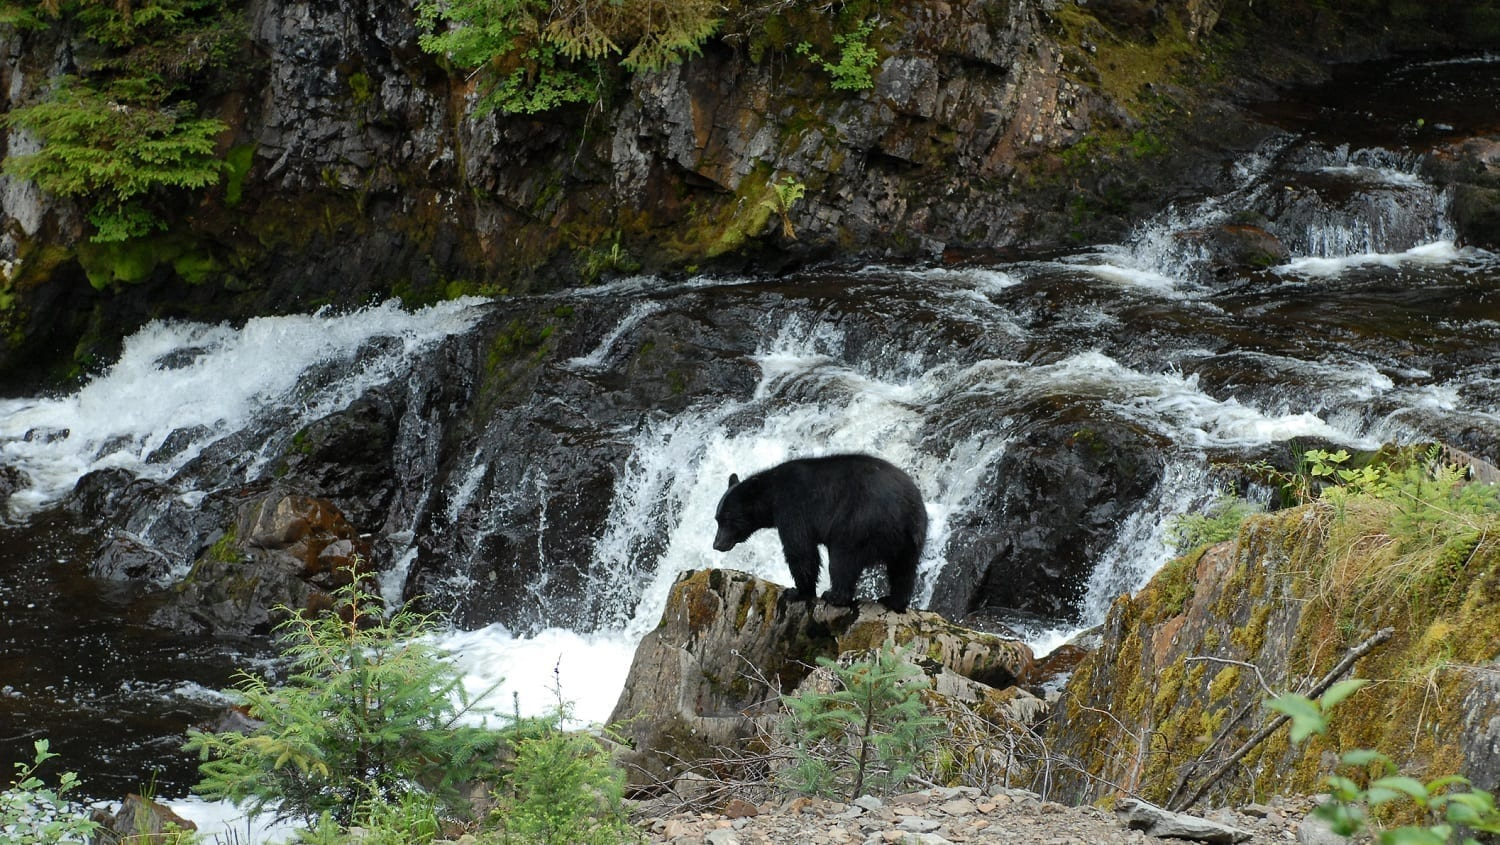 Black bear in an Alaskan stream: Photo 79886466 © Sports Images | Dreamstime.com